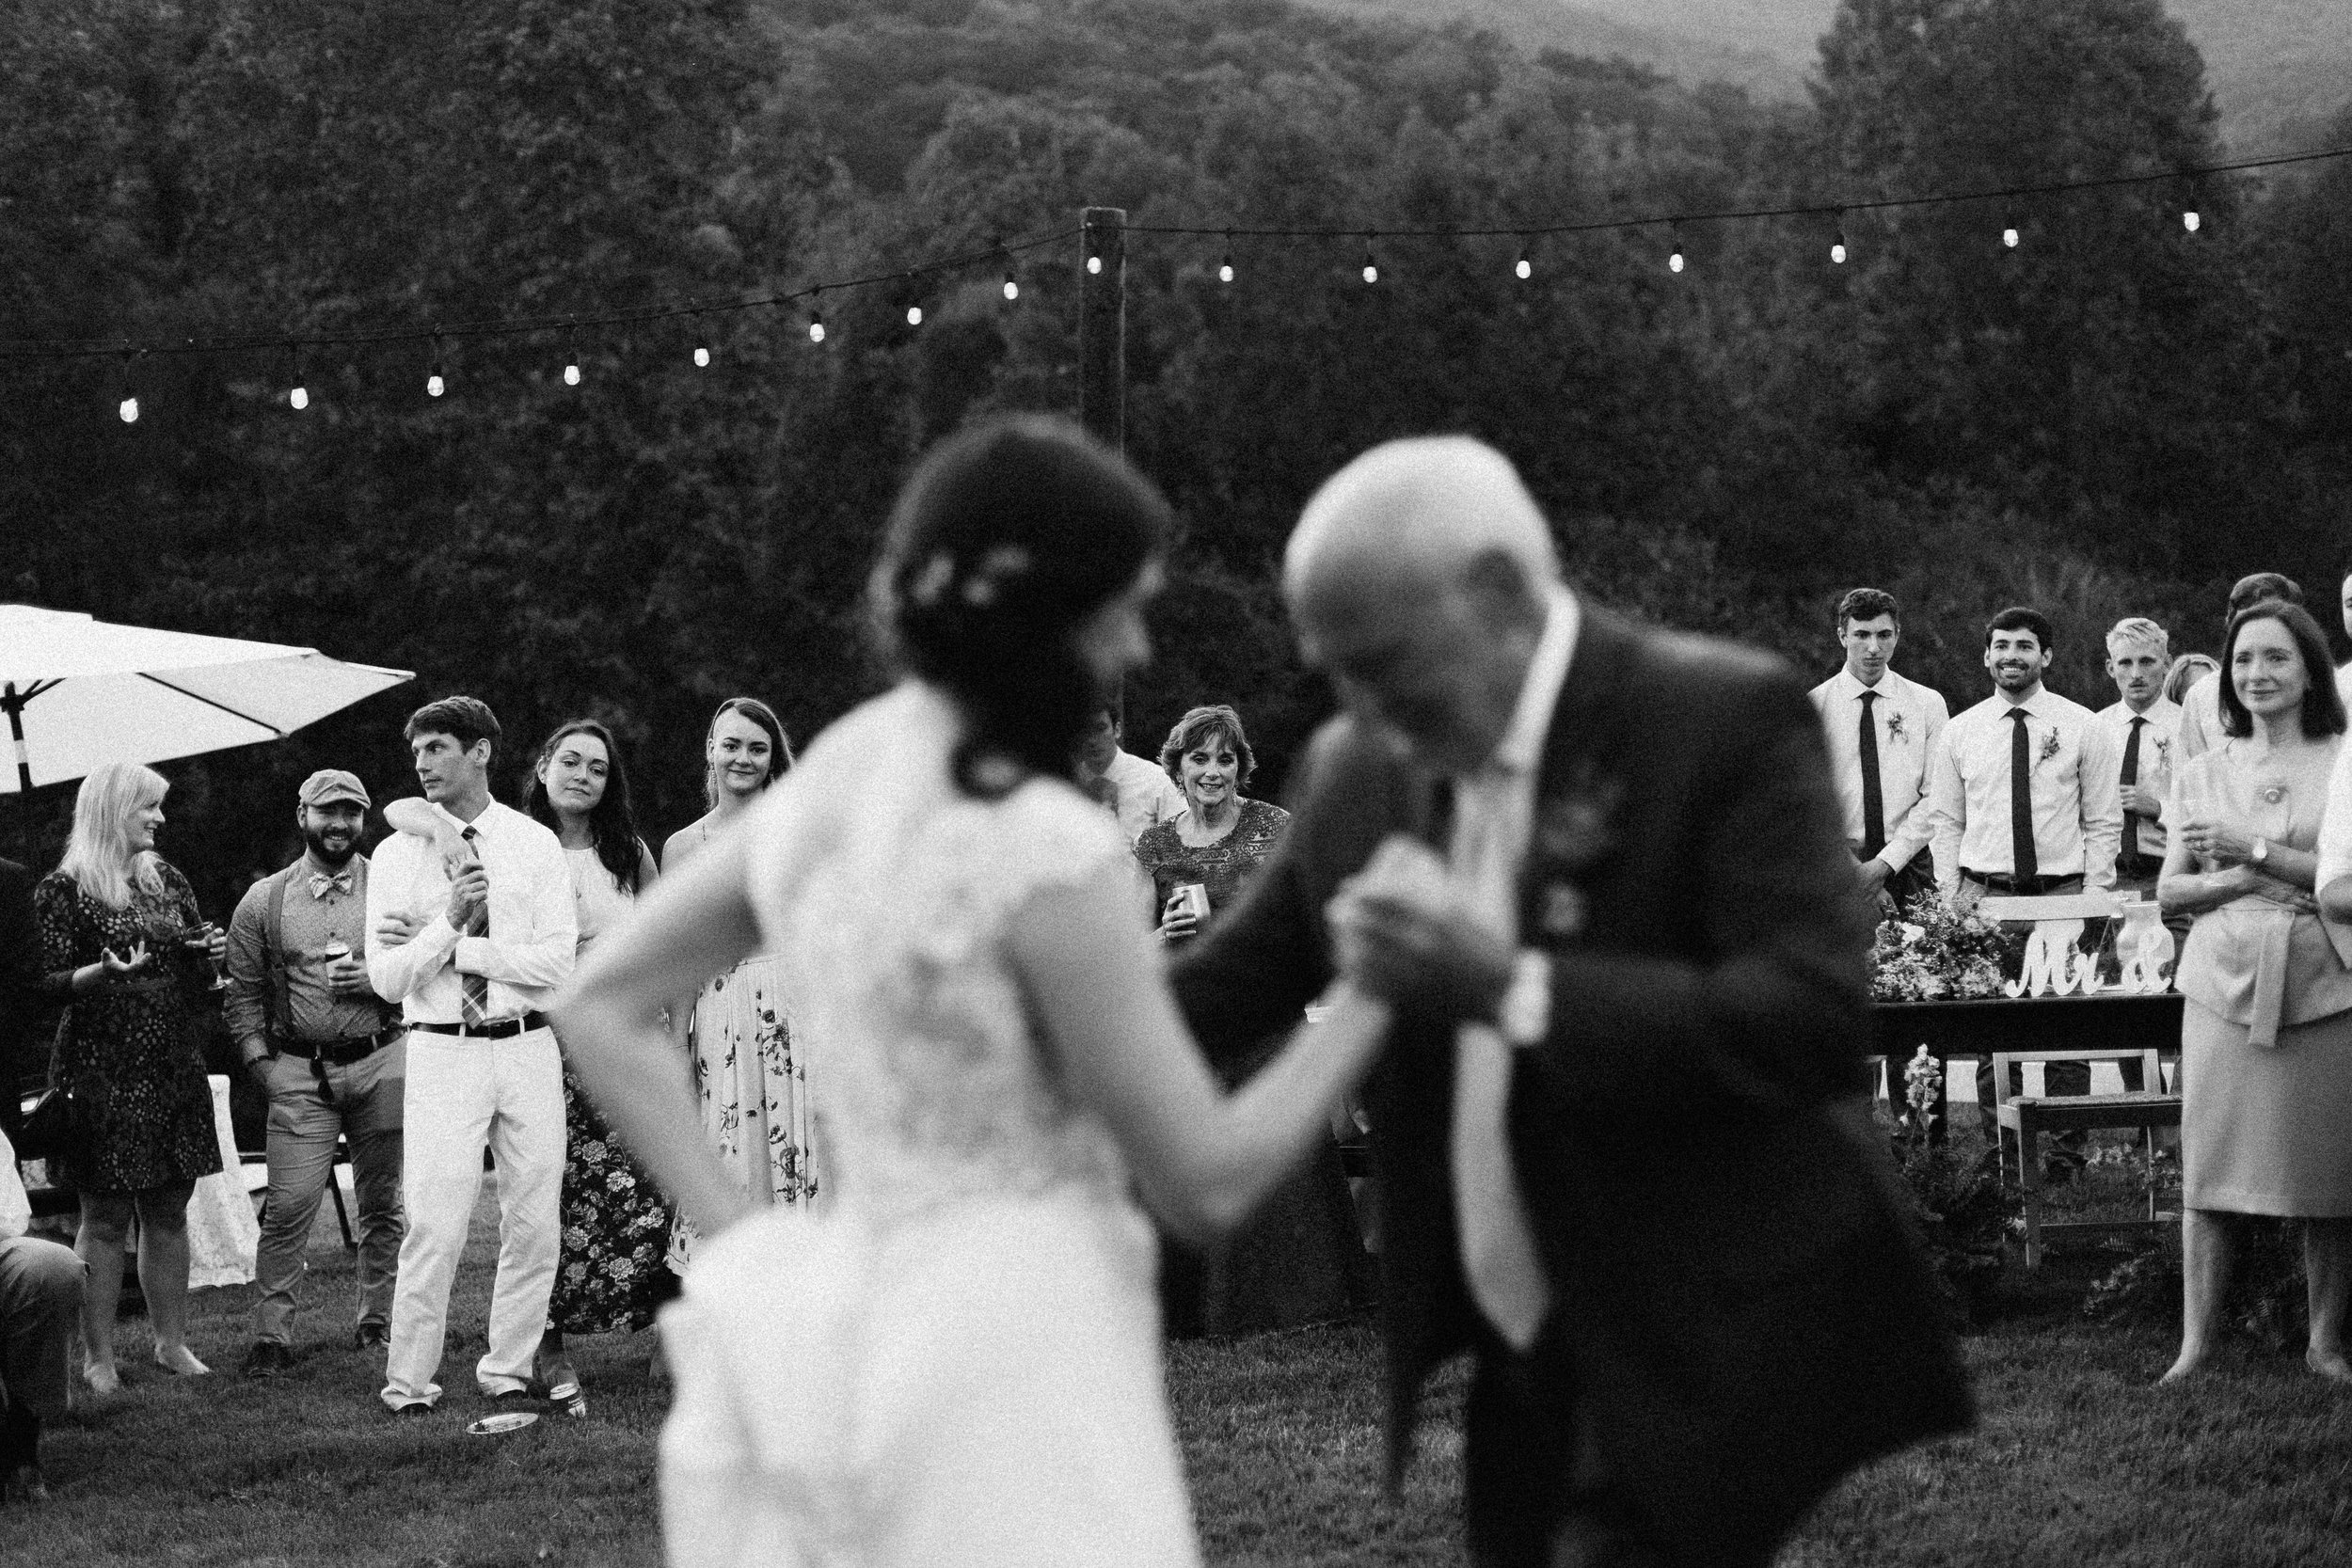 cleveland_georgia_mountain_laurel_farm_natural_classic_timeless_documentary_candid_wedding_emotional_photojournalism_river_west_1928.jpg